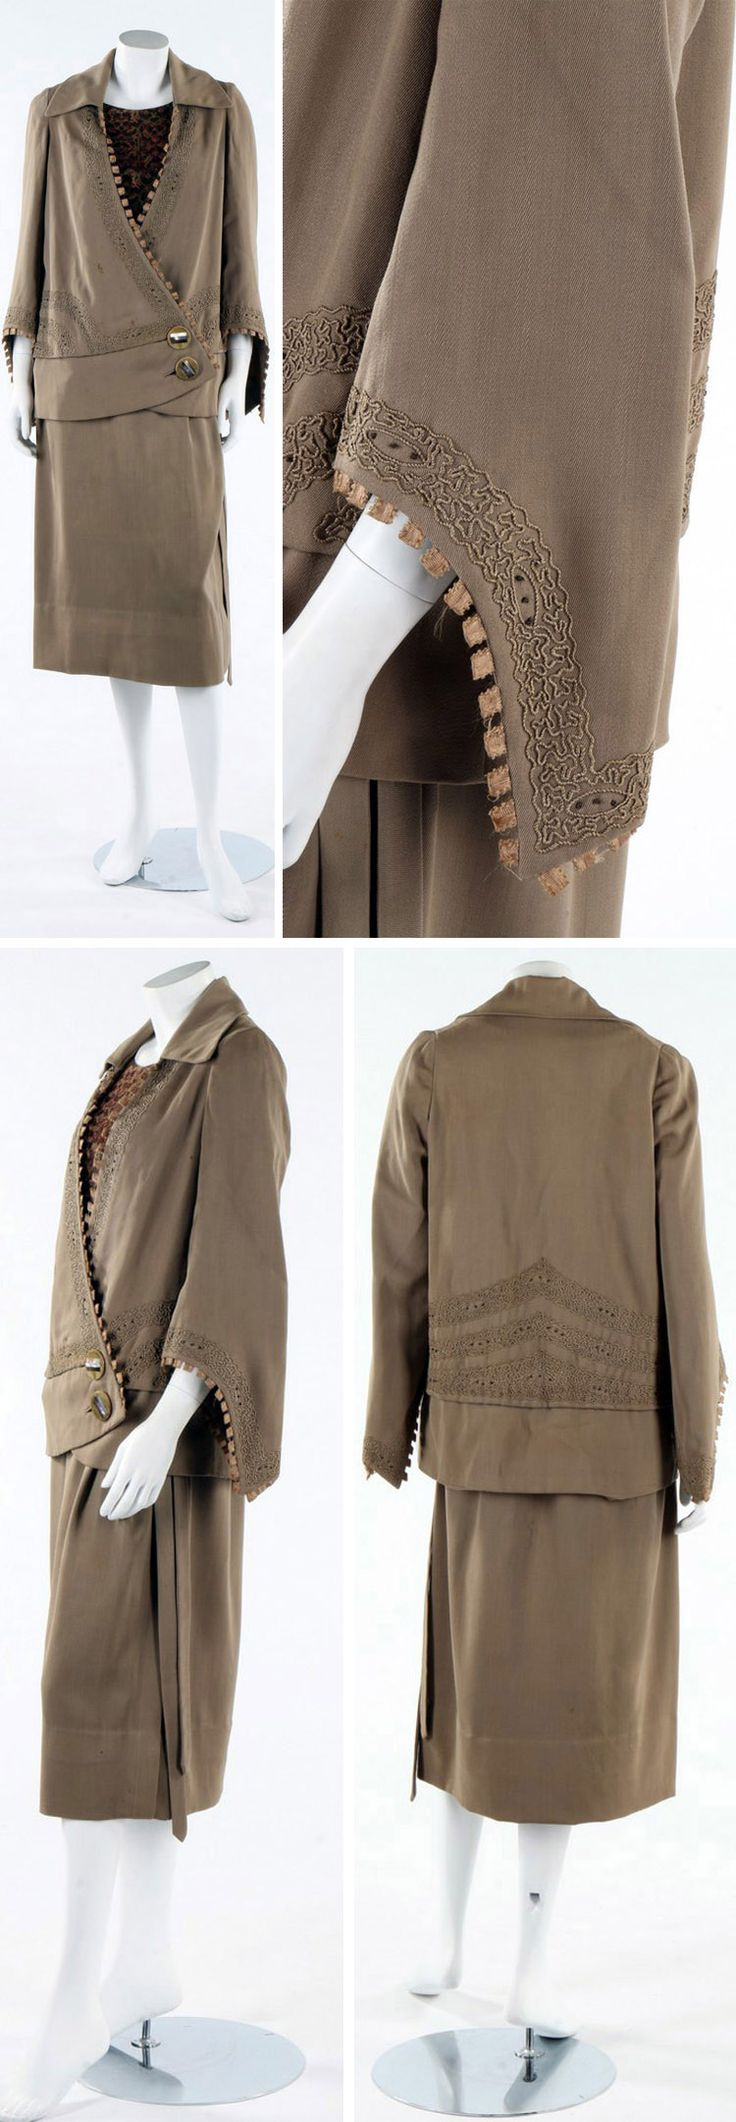 Day ensemble, Redfern, ca. 1923. Jacket of khaki wool with couched vermicular threads & silk rib tabs. Large celluloid buttons at waist; matching dress with tie at waist. Bodice of bouclé silk-wool mix printed with foliate bands in autumnal shades, with open shoulders to sleeves. Kerry Taylor Auctions